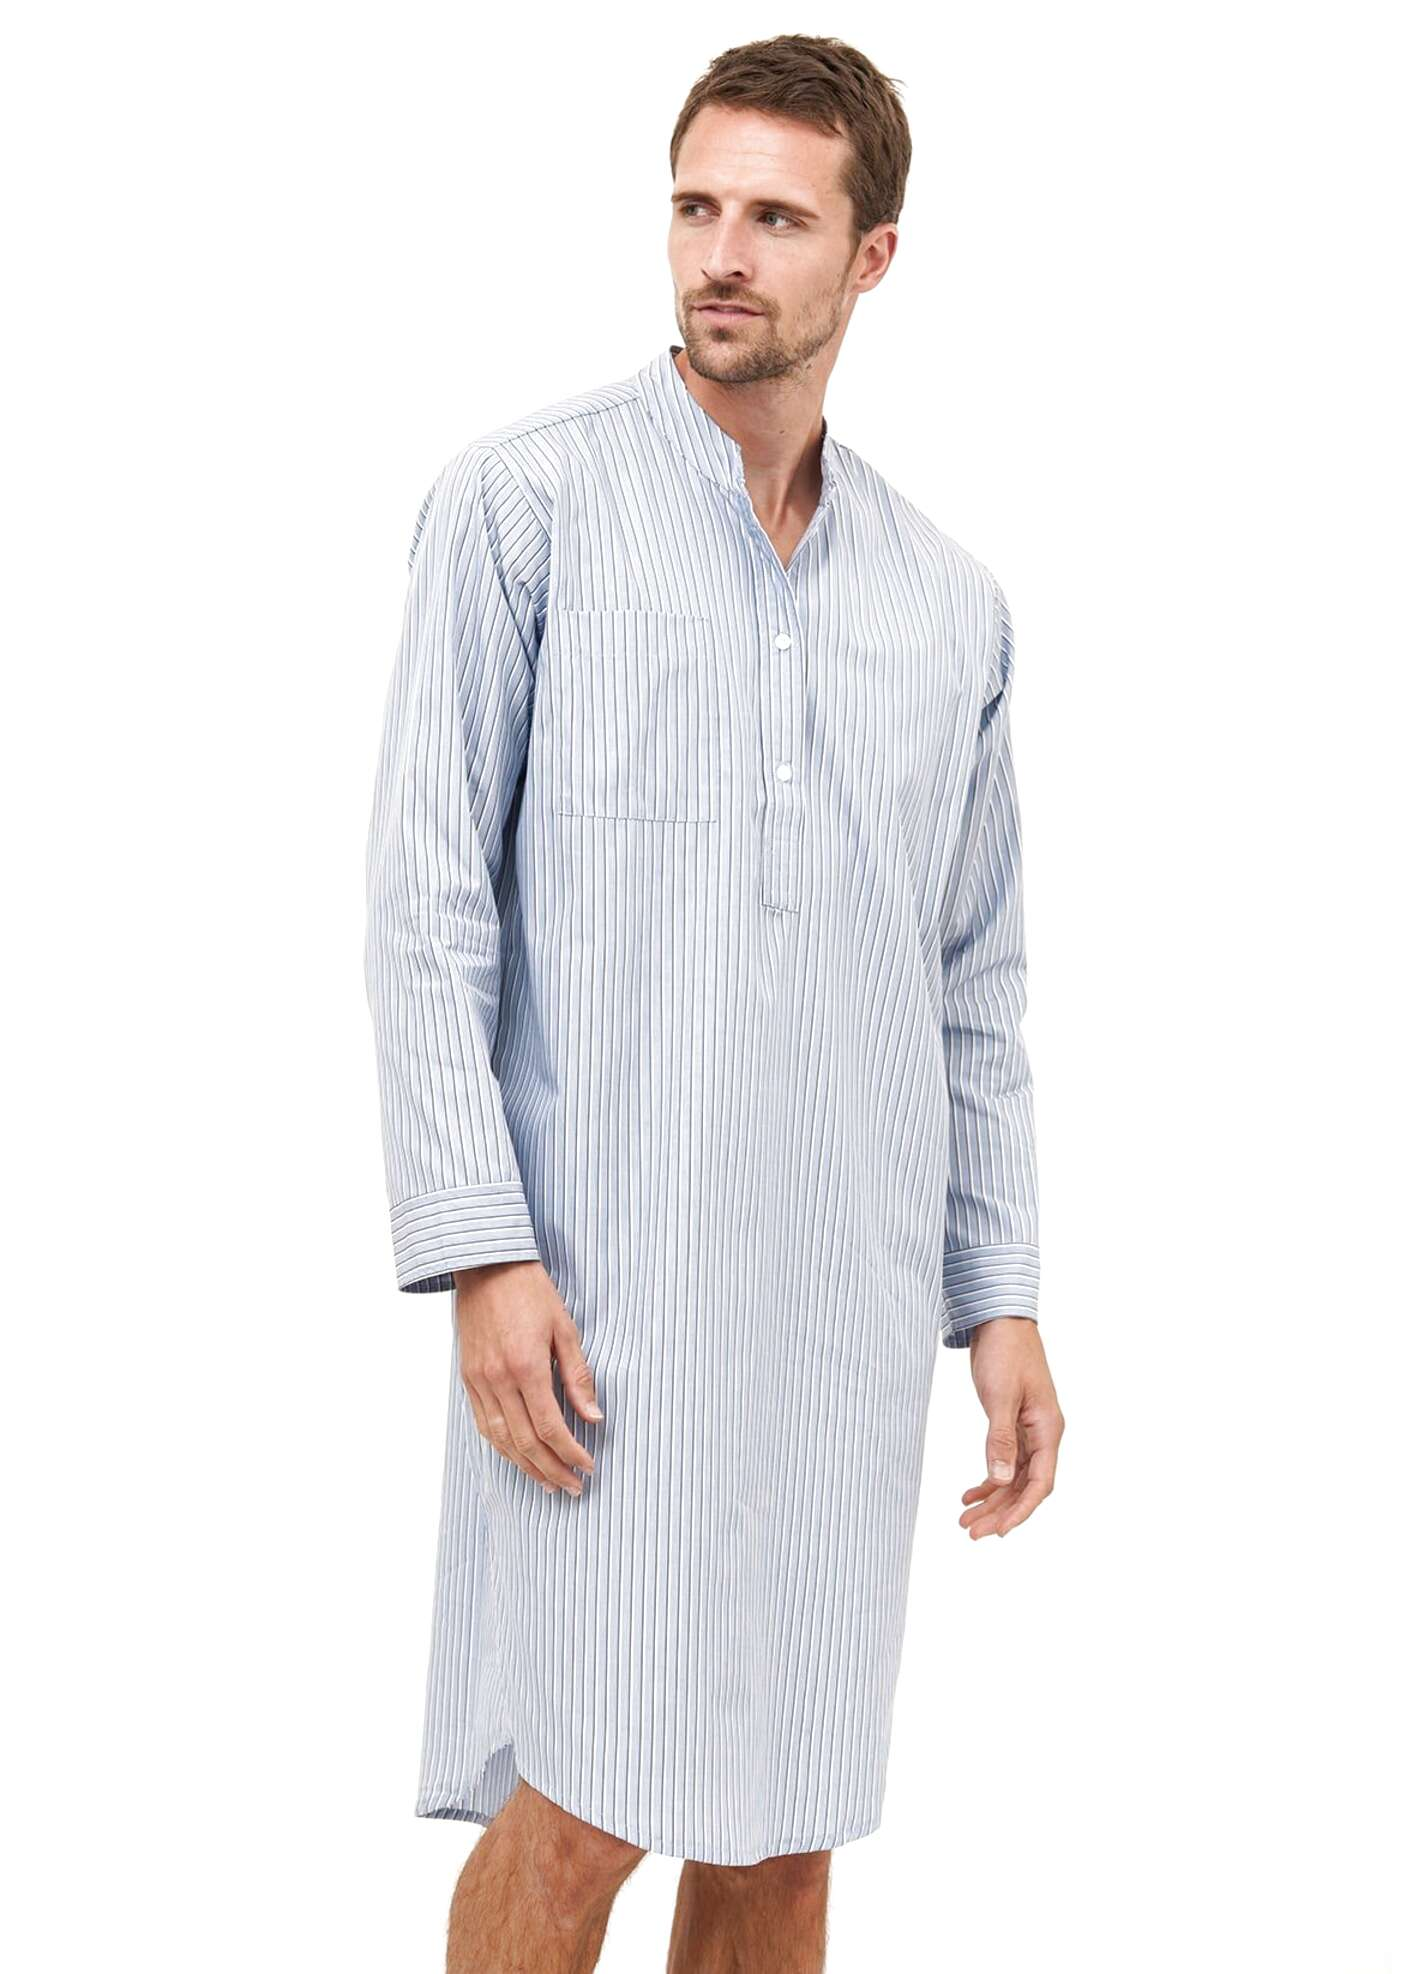 mens nightshirt for sale